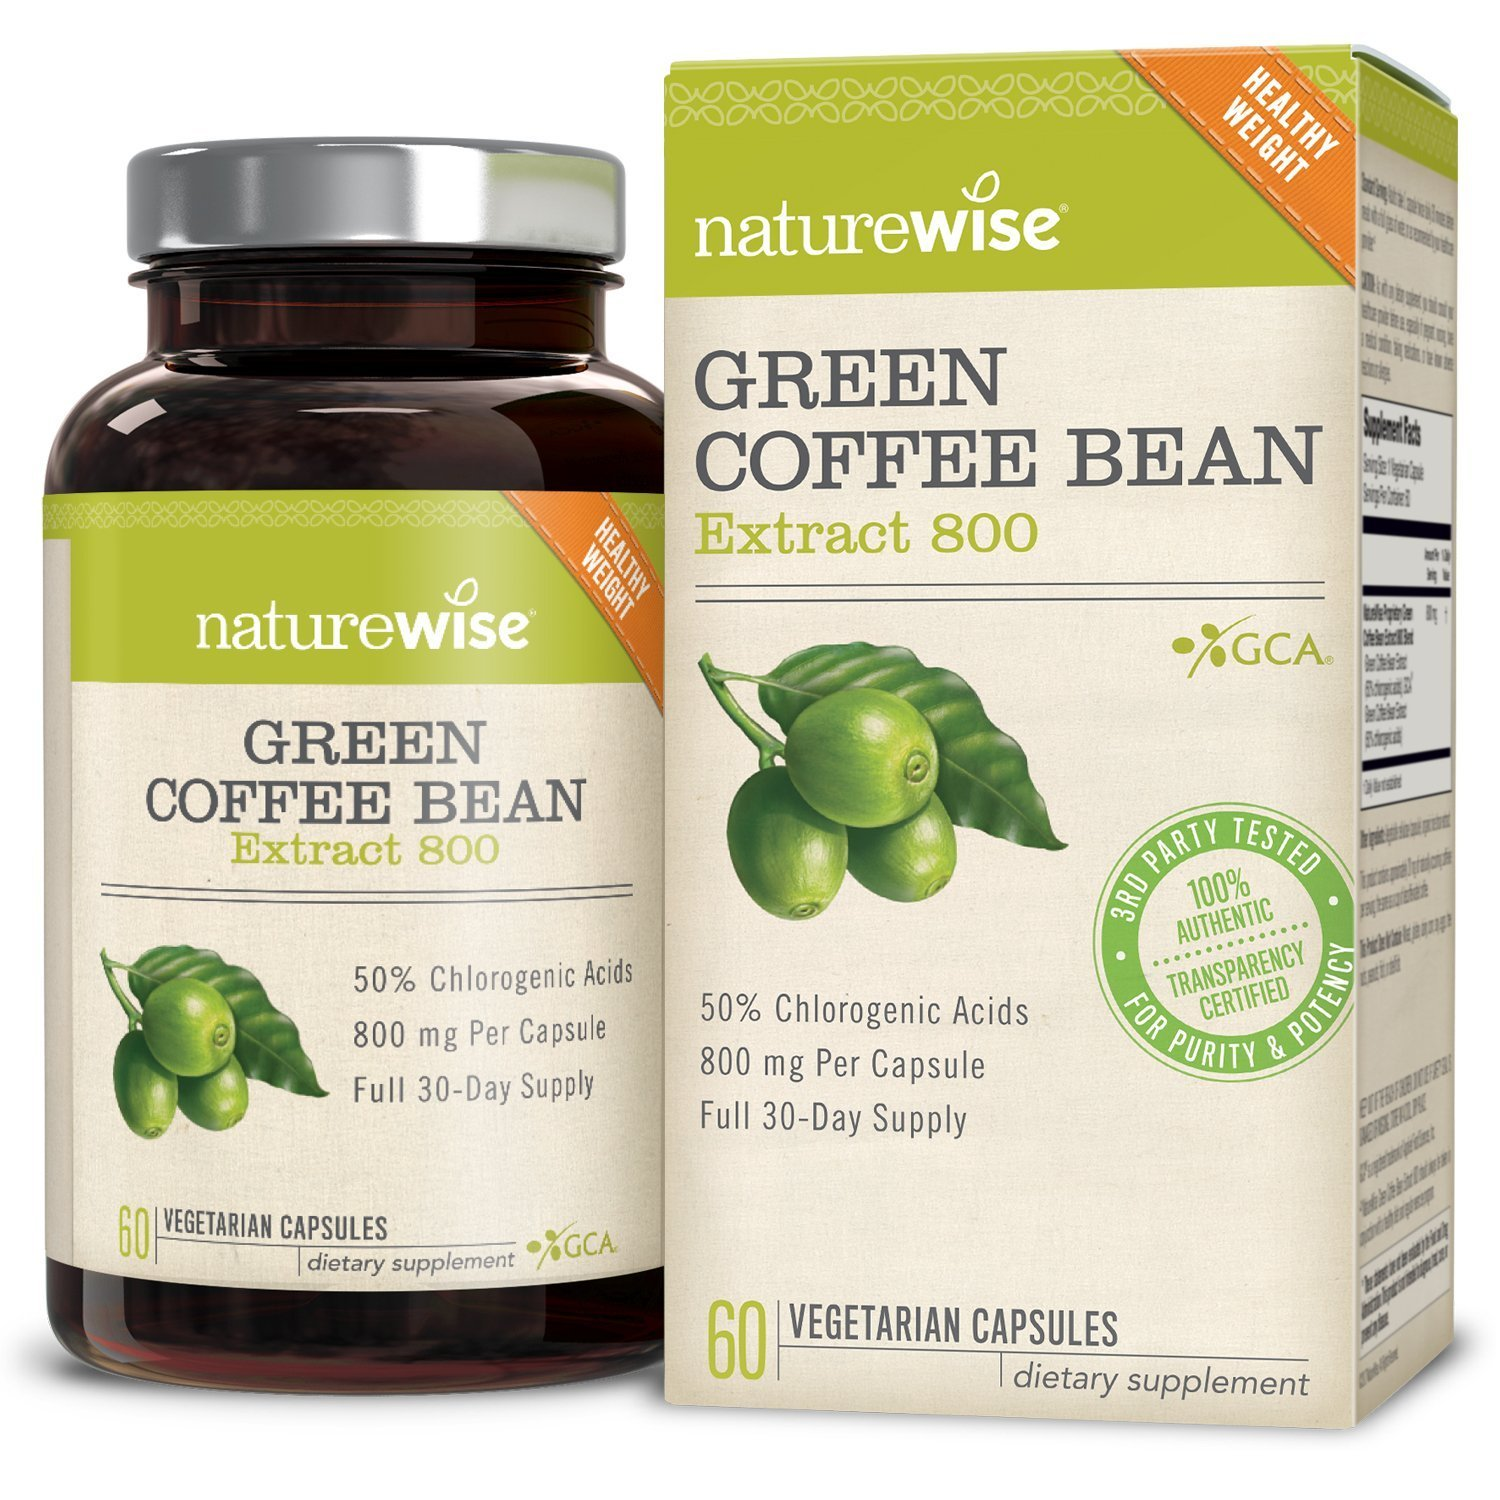 NatureWise Green Coffee Bean 800mg Max Potency Extract 50% Chlorogenic Acids | Raw Green Coffee Antioxidant Supplement & Metabolism Booster for Weight Loss | Non-GMO, Vegan, Gluten-Free [1 Month] by NatureWise